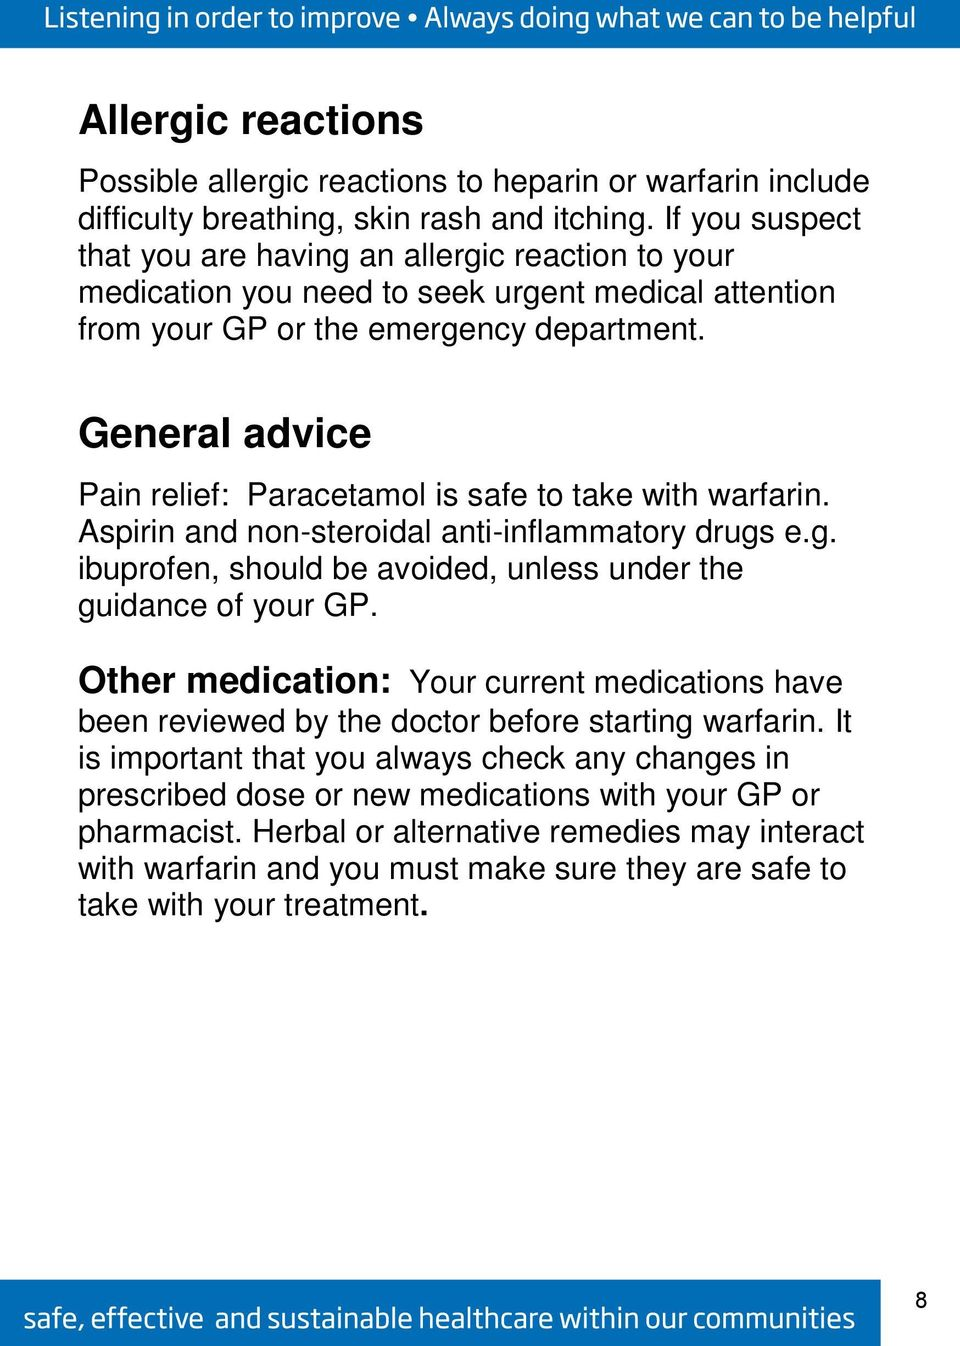 General advice Pain relief: Paracetamol is safe to take with warfarin. Aspirin and non-steroidal anti-inflammatory drugs e.g. ibuprofen, should be avoided, unless under the guidance of your GP.